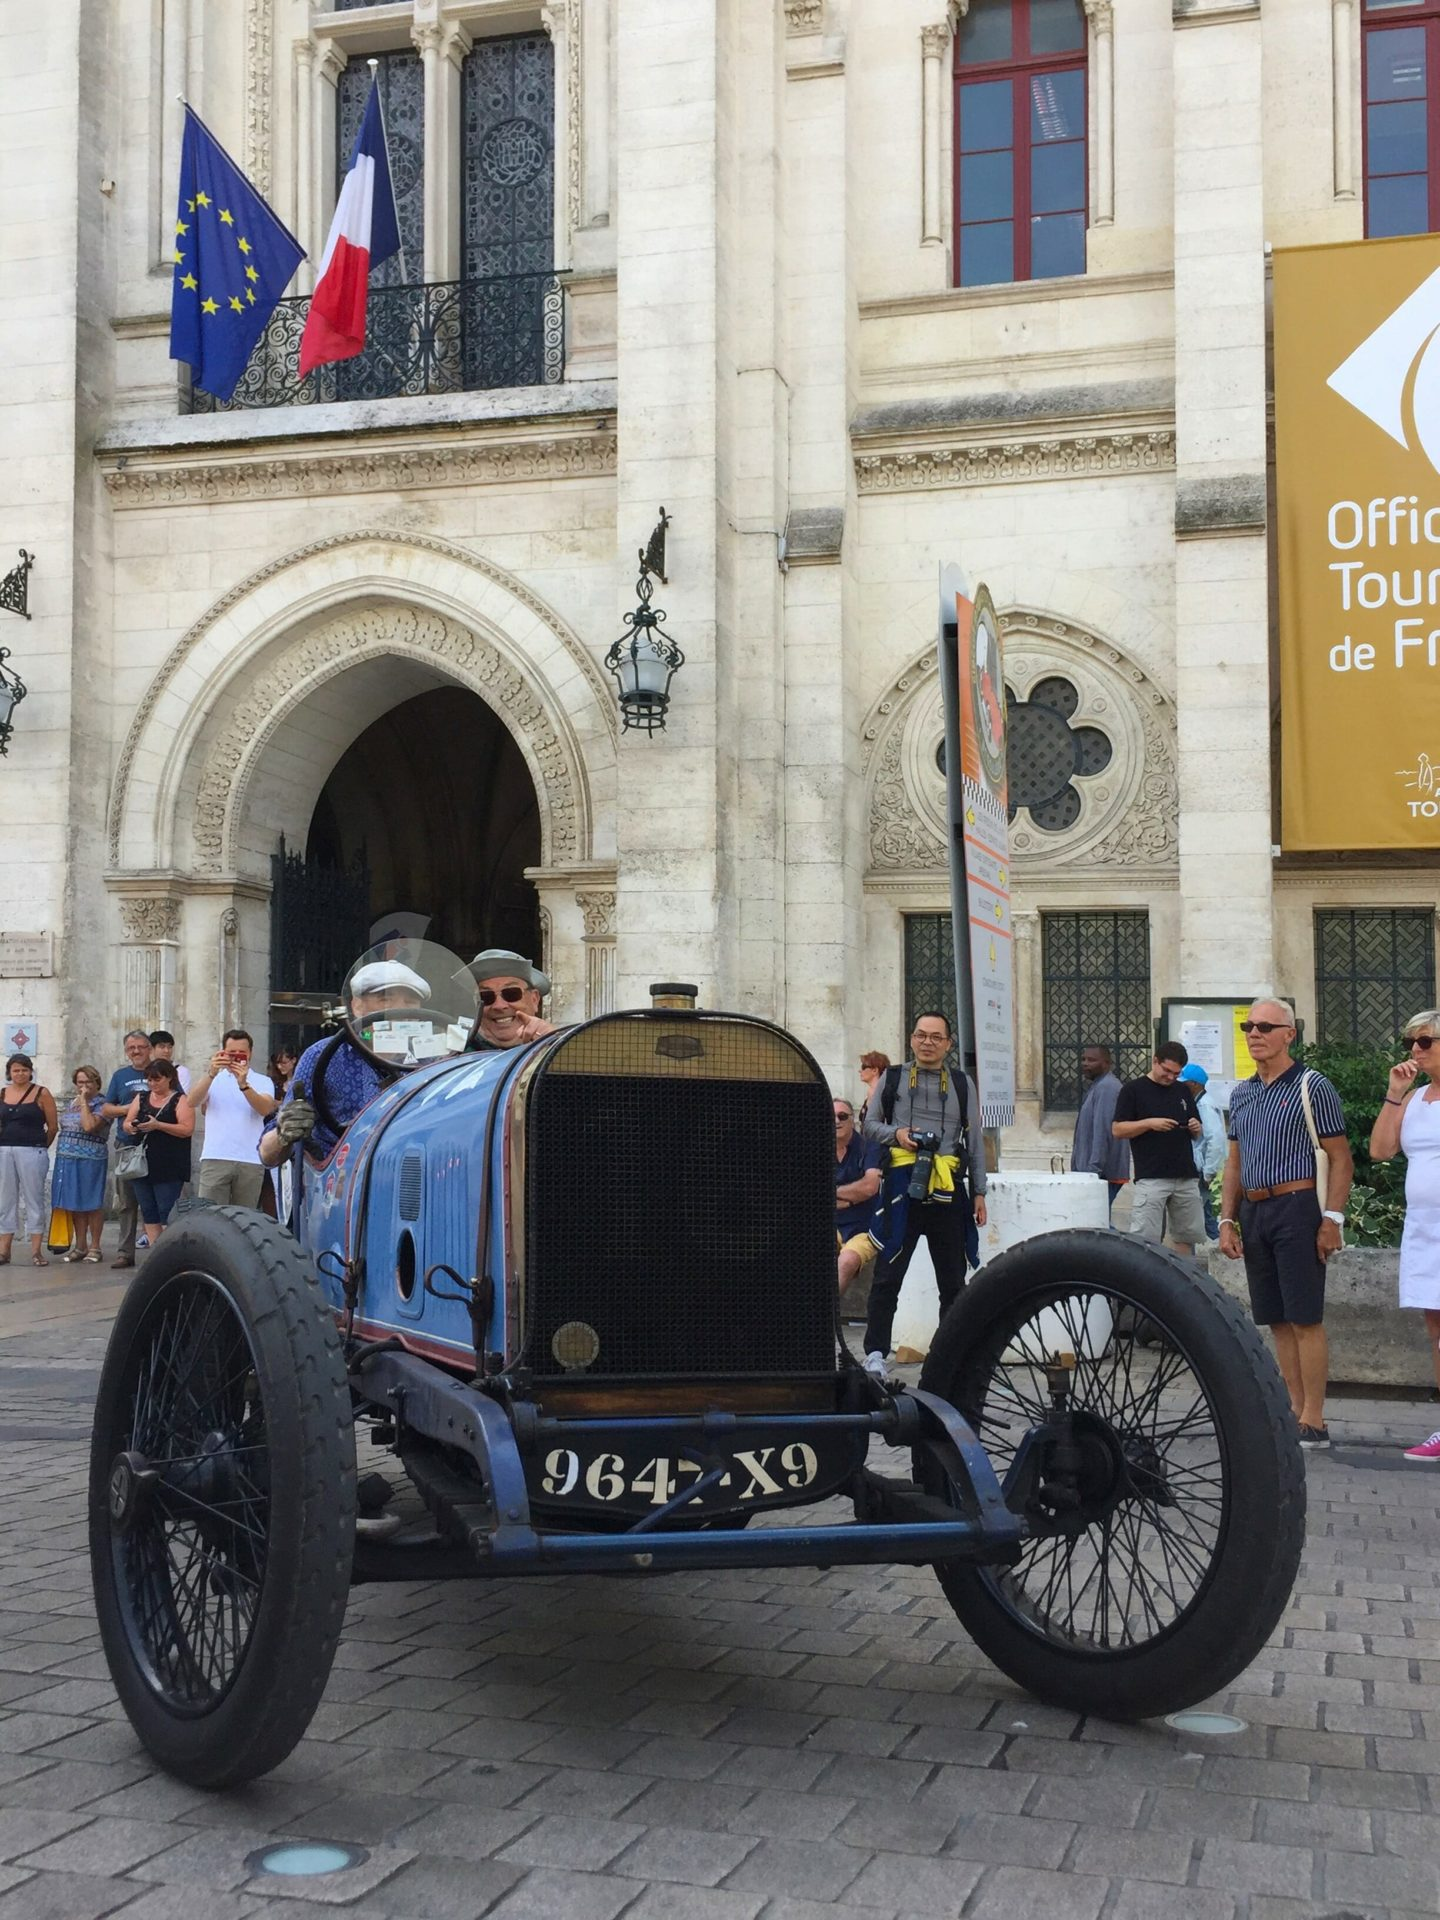 roadrugcars road rug cars circuit des remparts angouleme first day center city